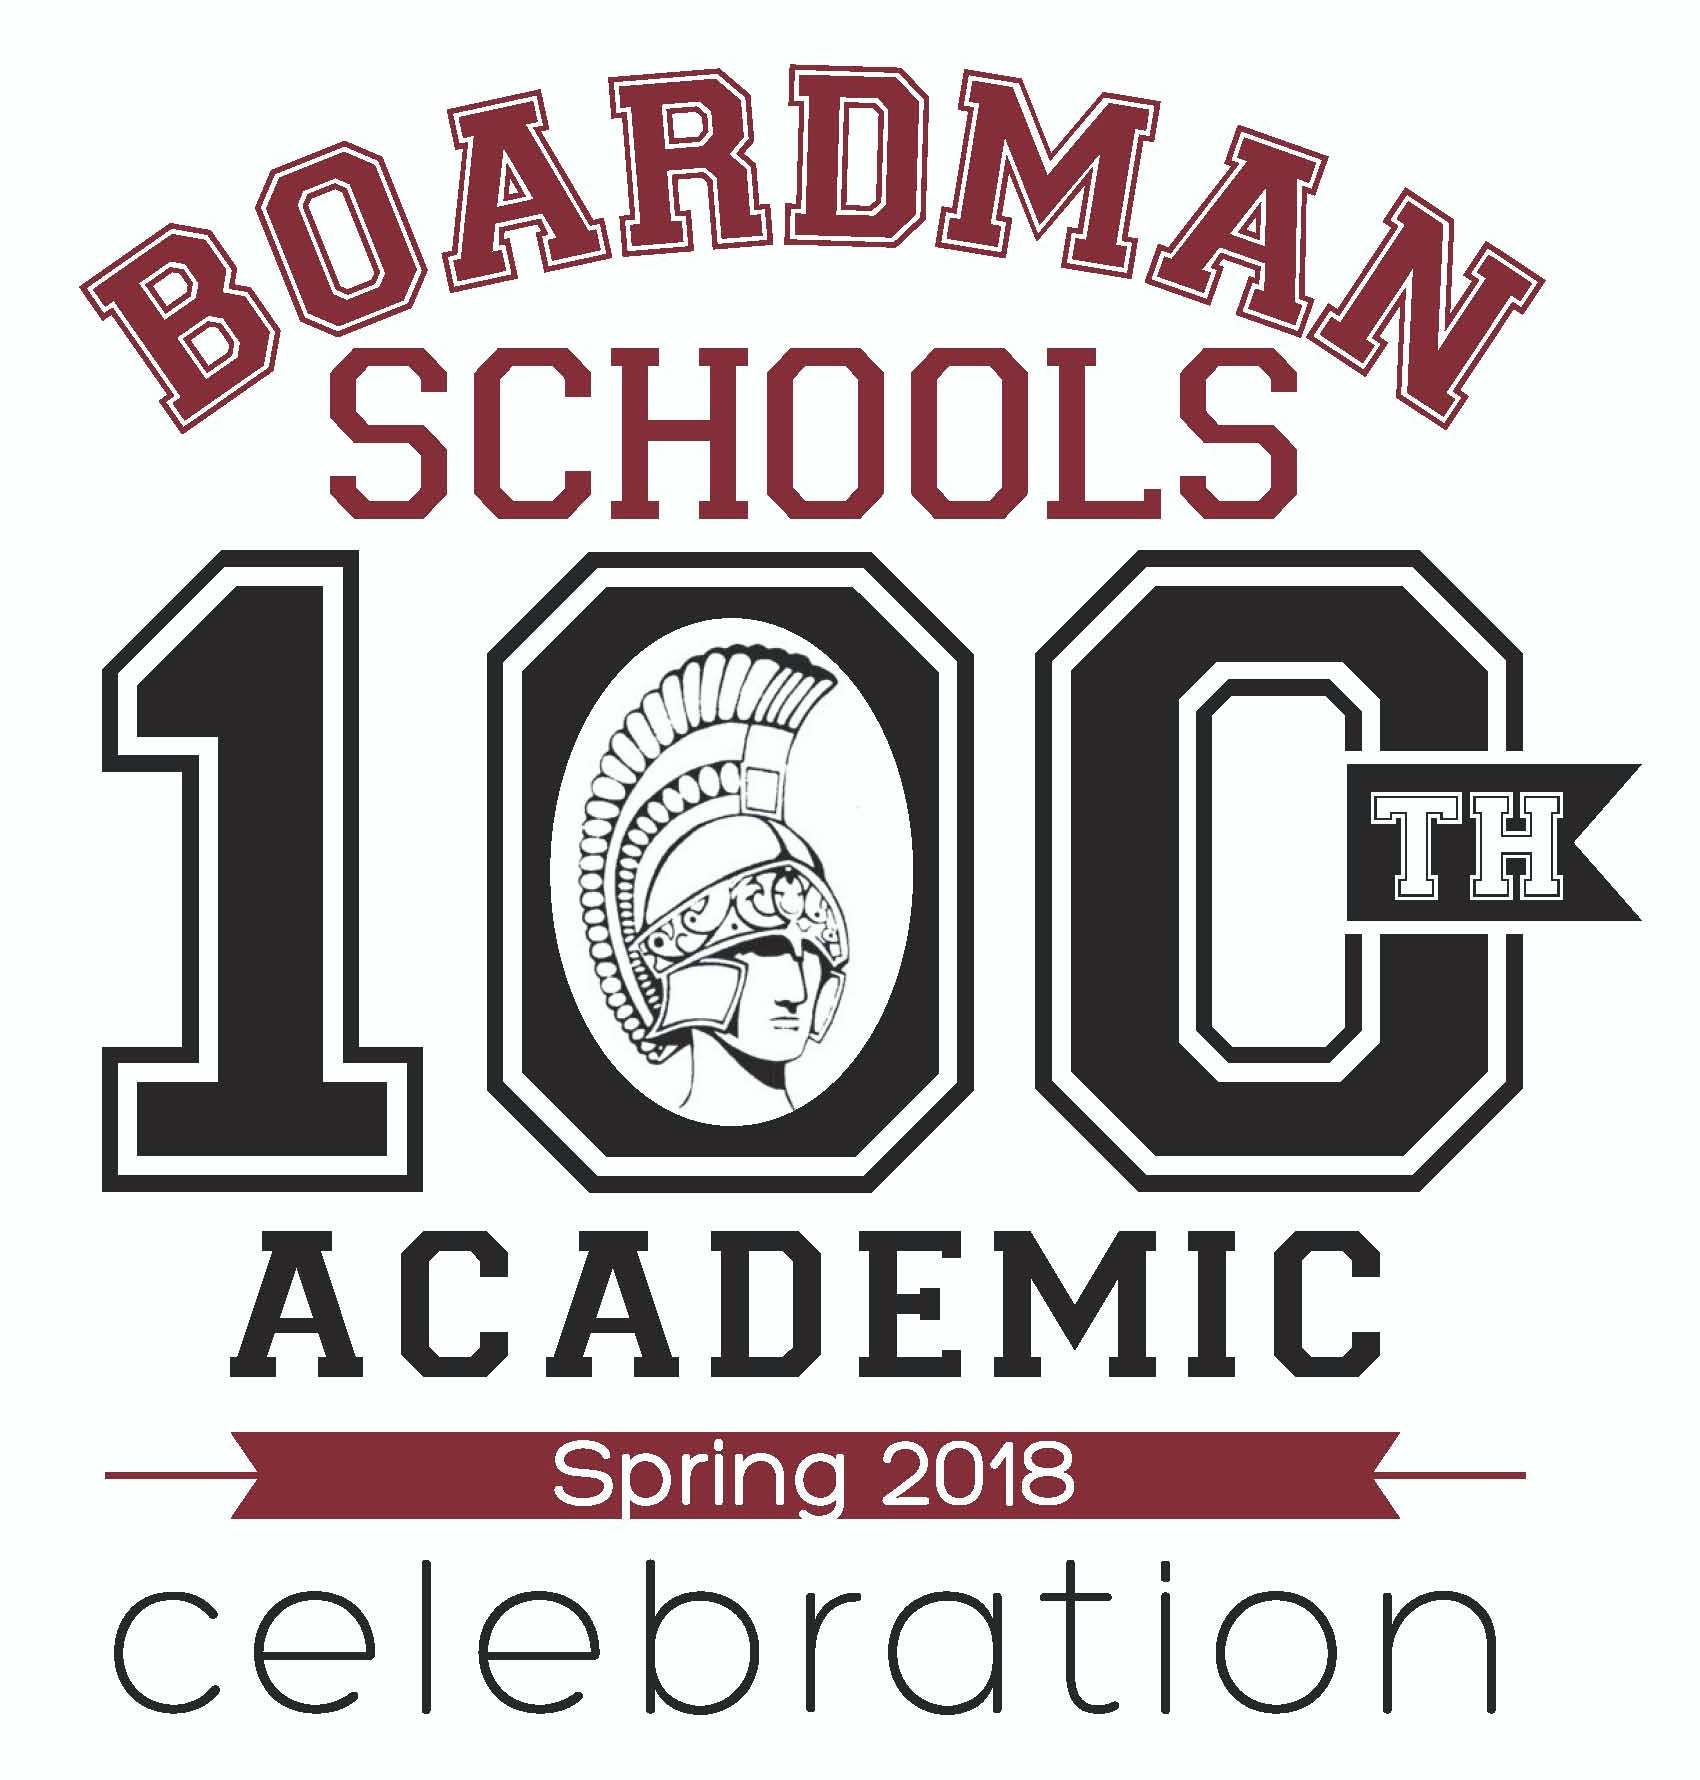 100th anniversary celebration of academics